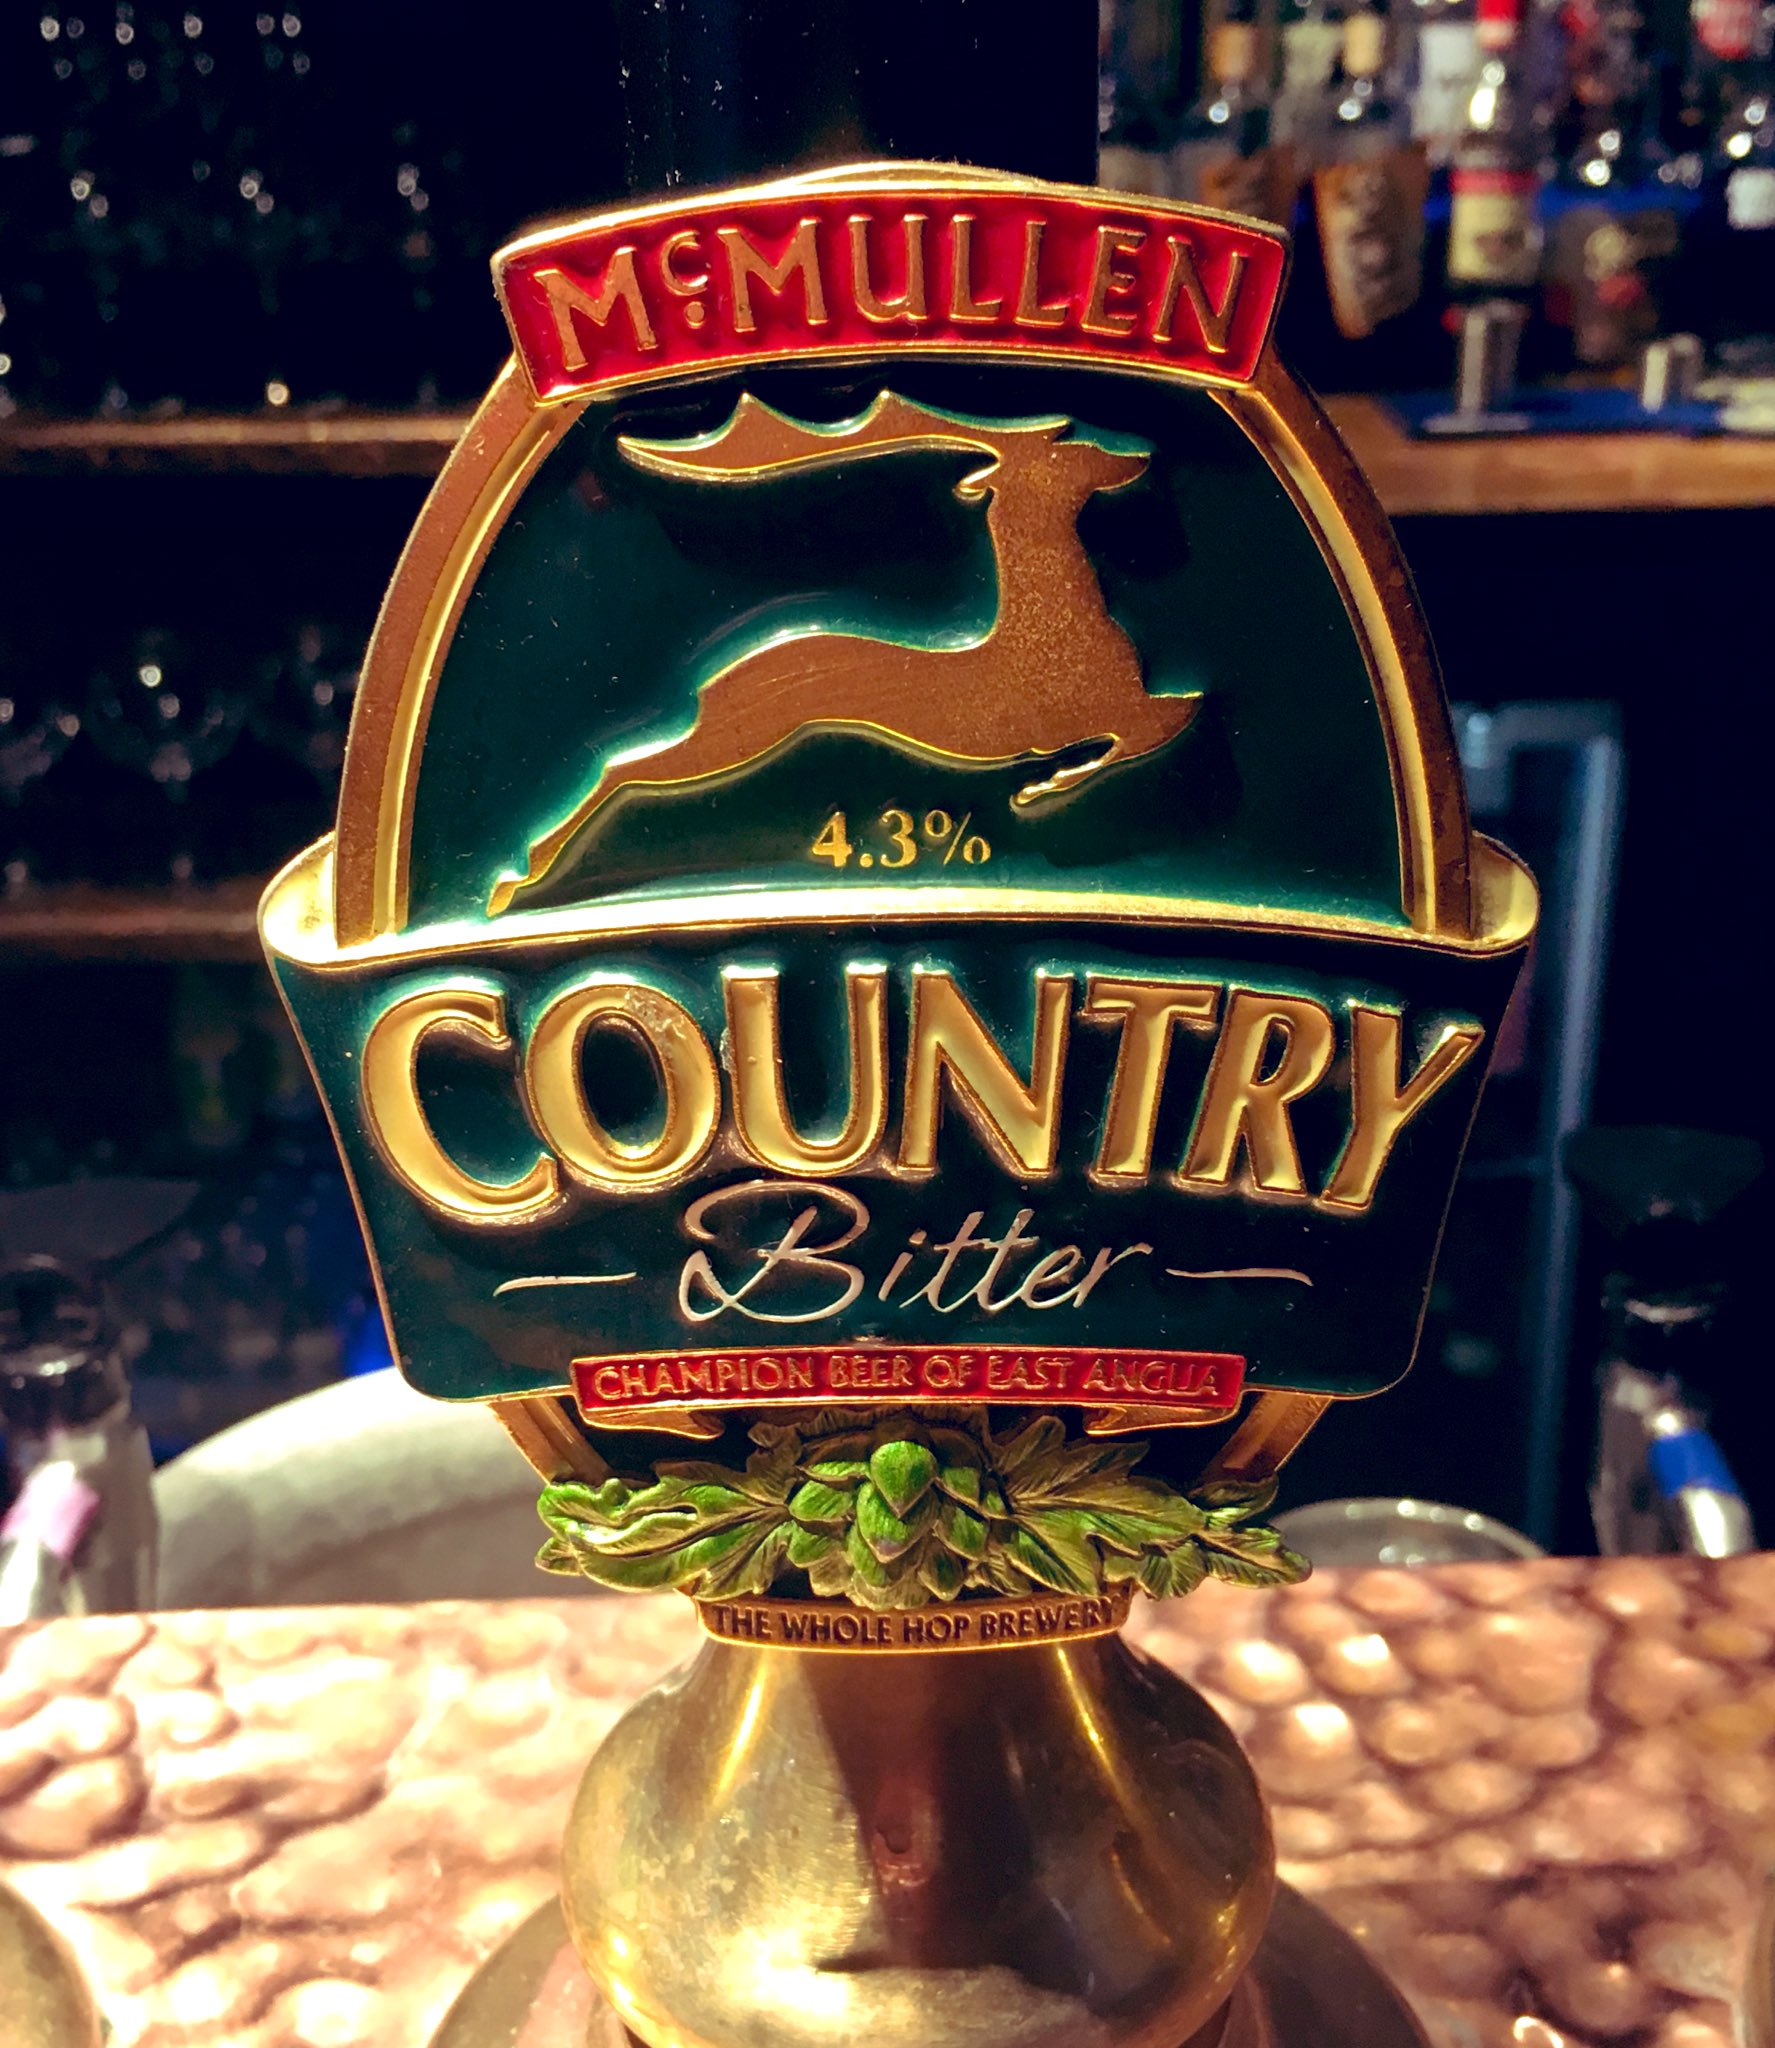 158: Country Bitter